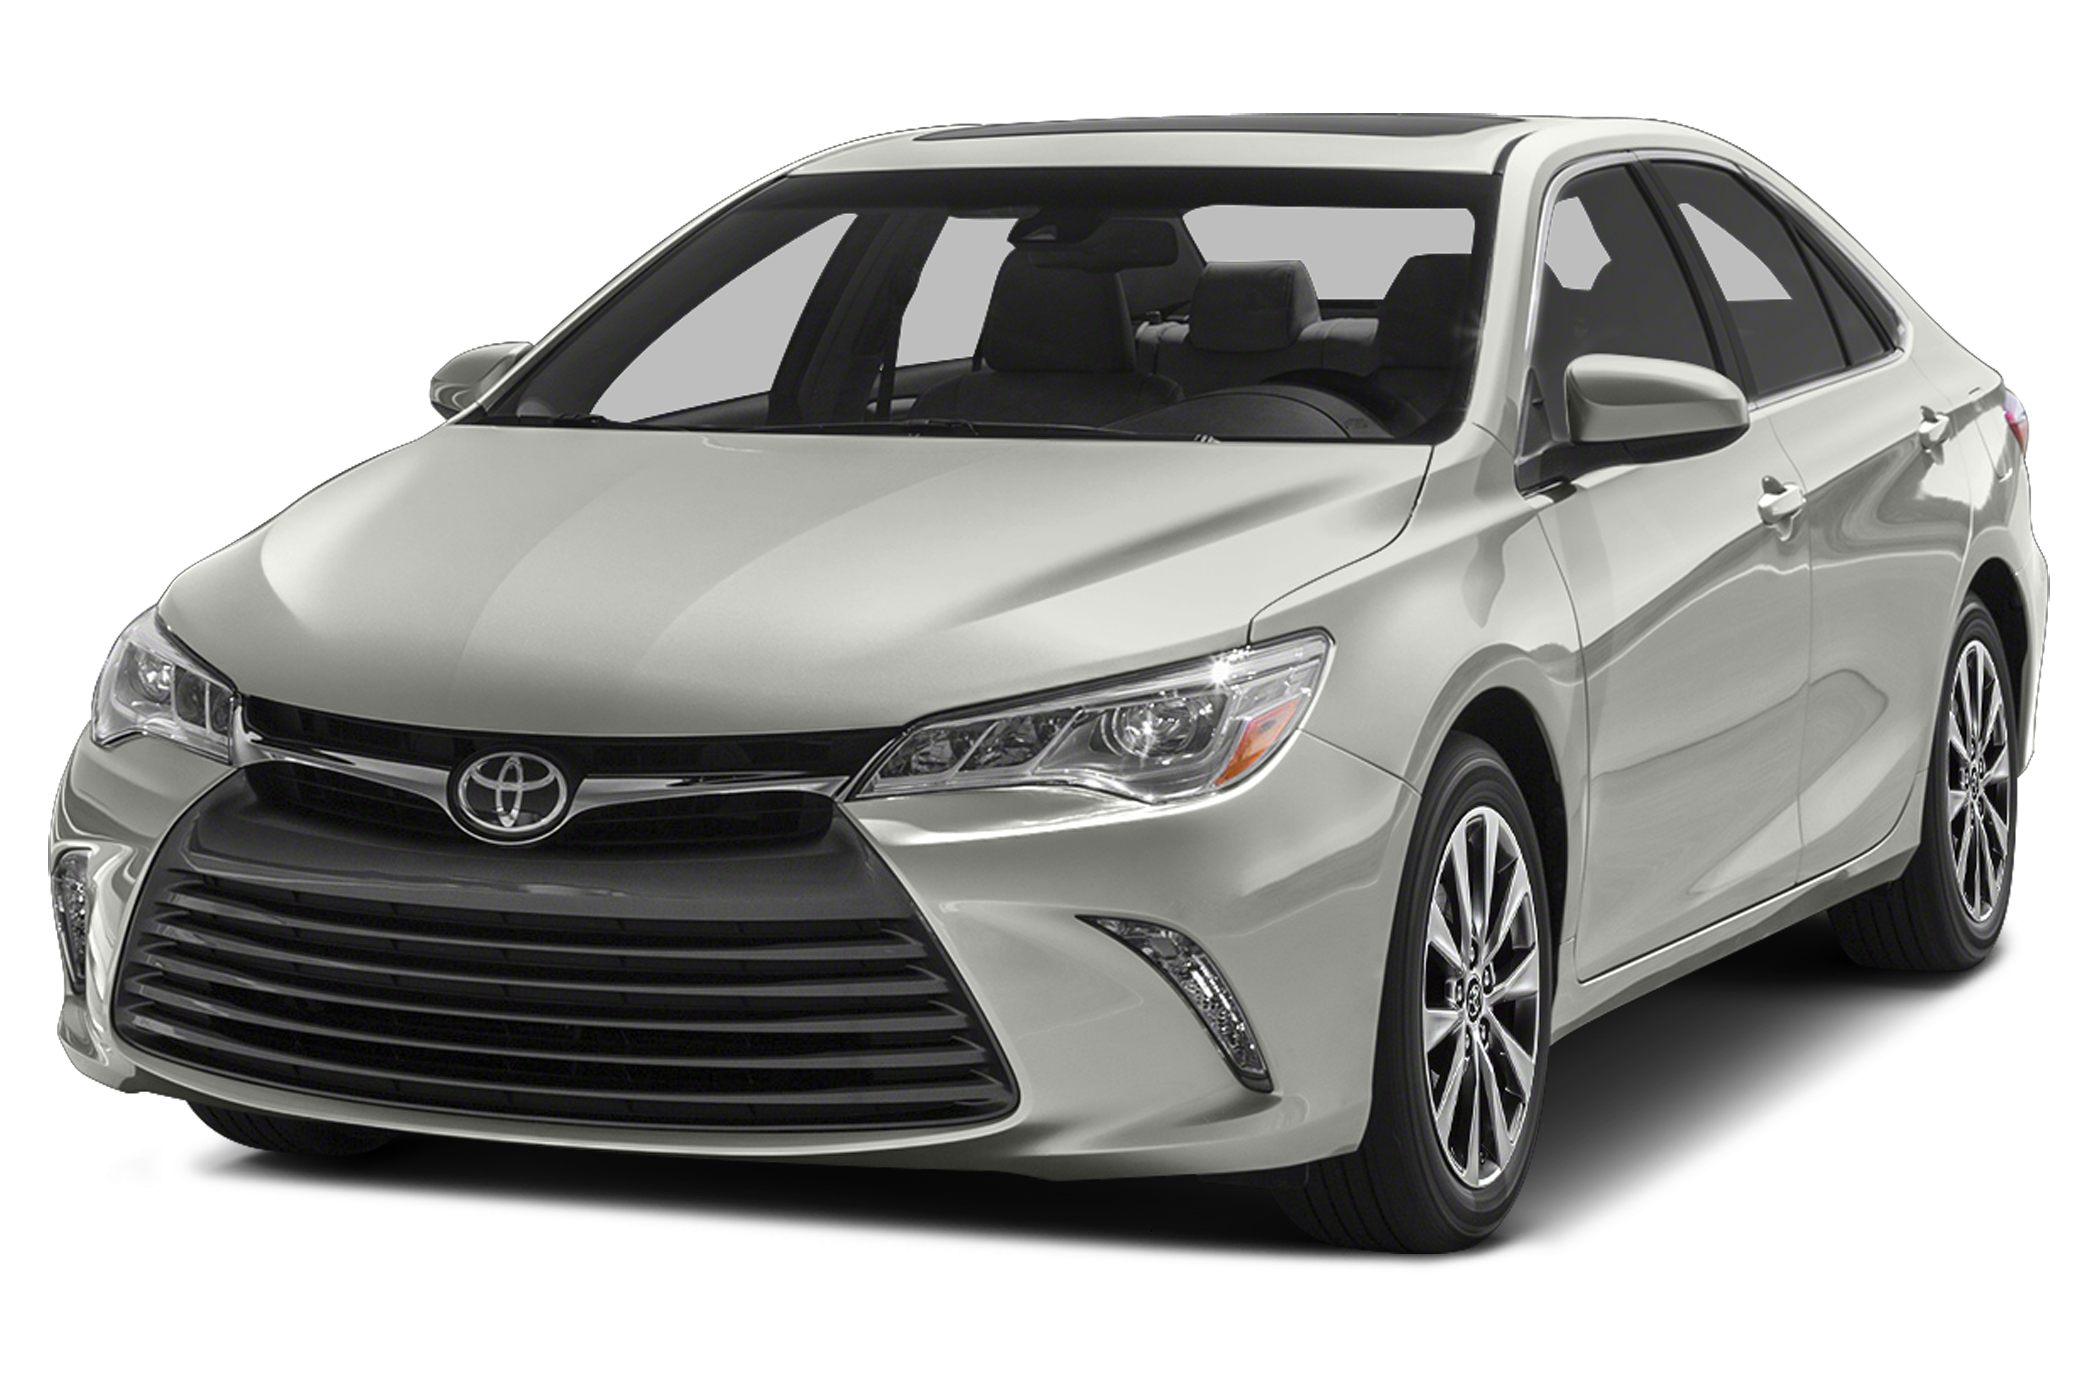 2015 Toyota Camry LE Sedan for sale in Philadelphia for $24,020 with 0 miles